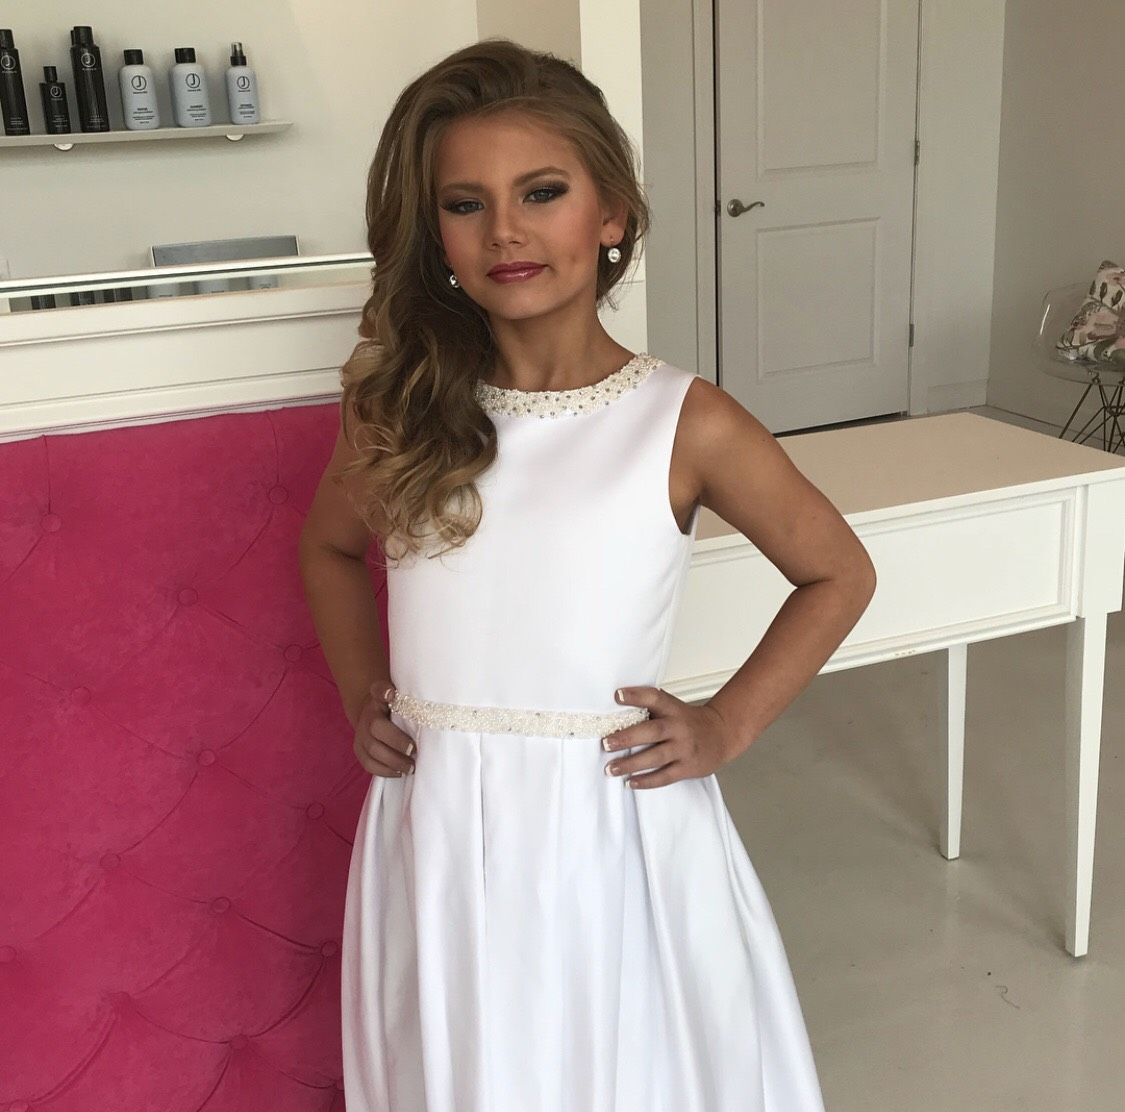 PHARIS BOONE, MISS PRE-TEEN MISSISSIPPI United States.